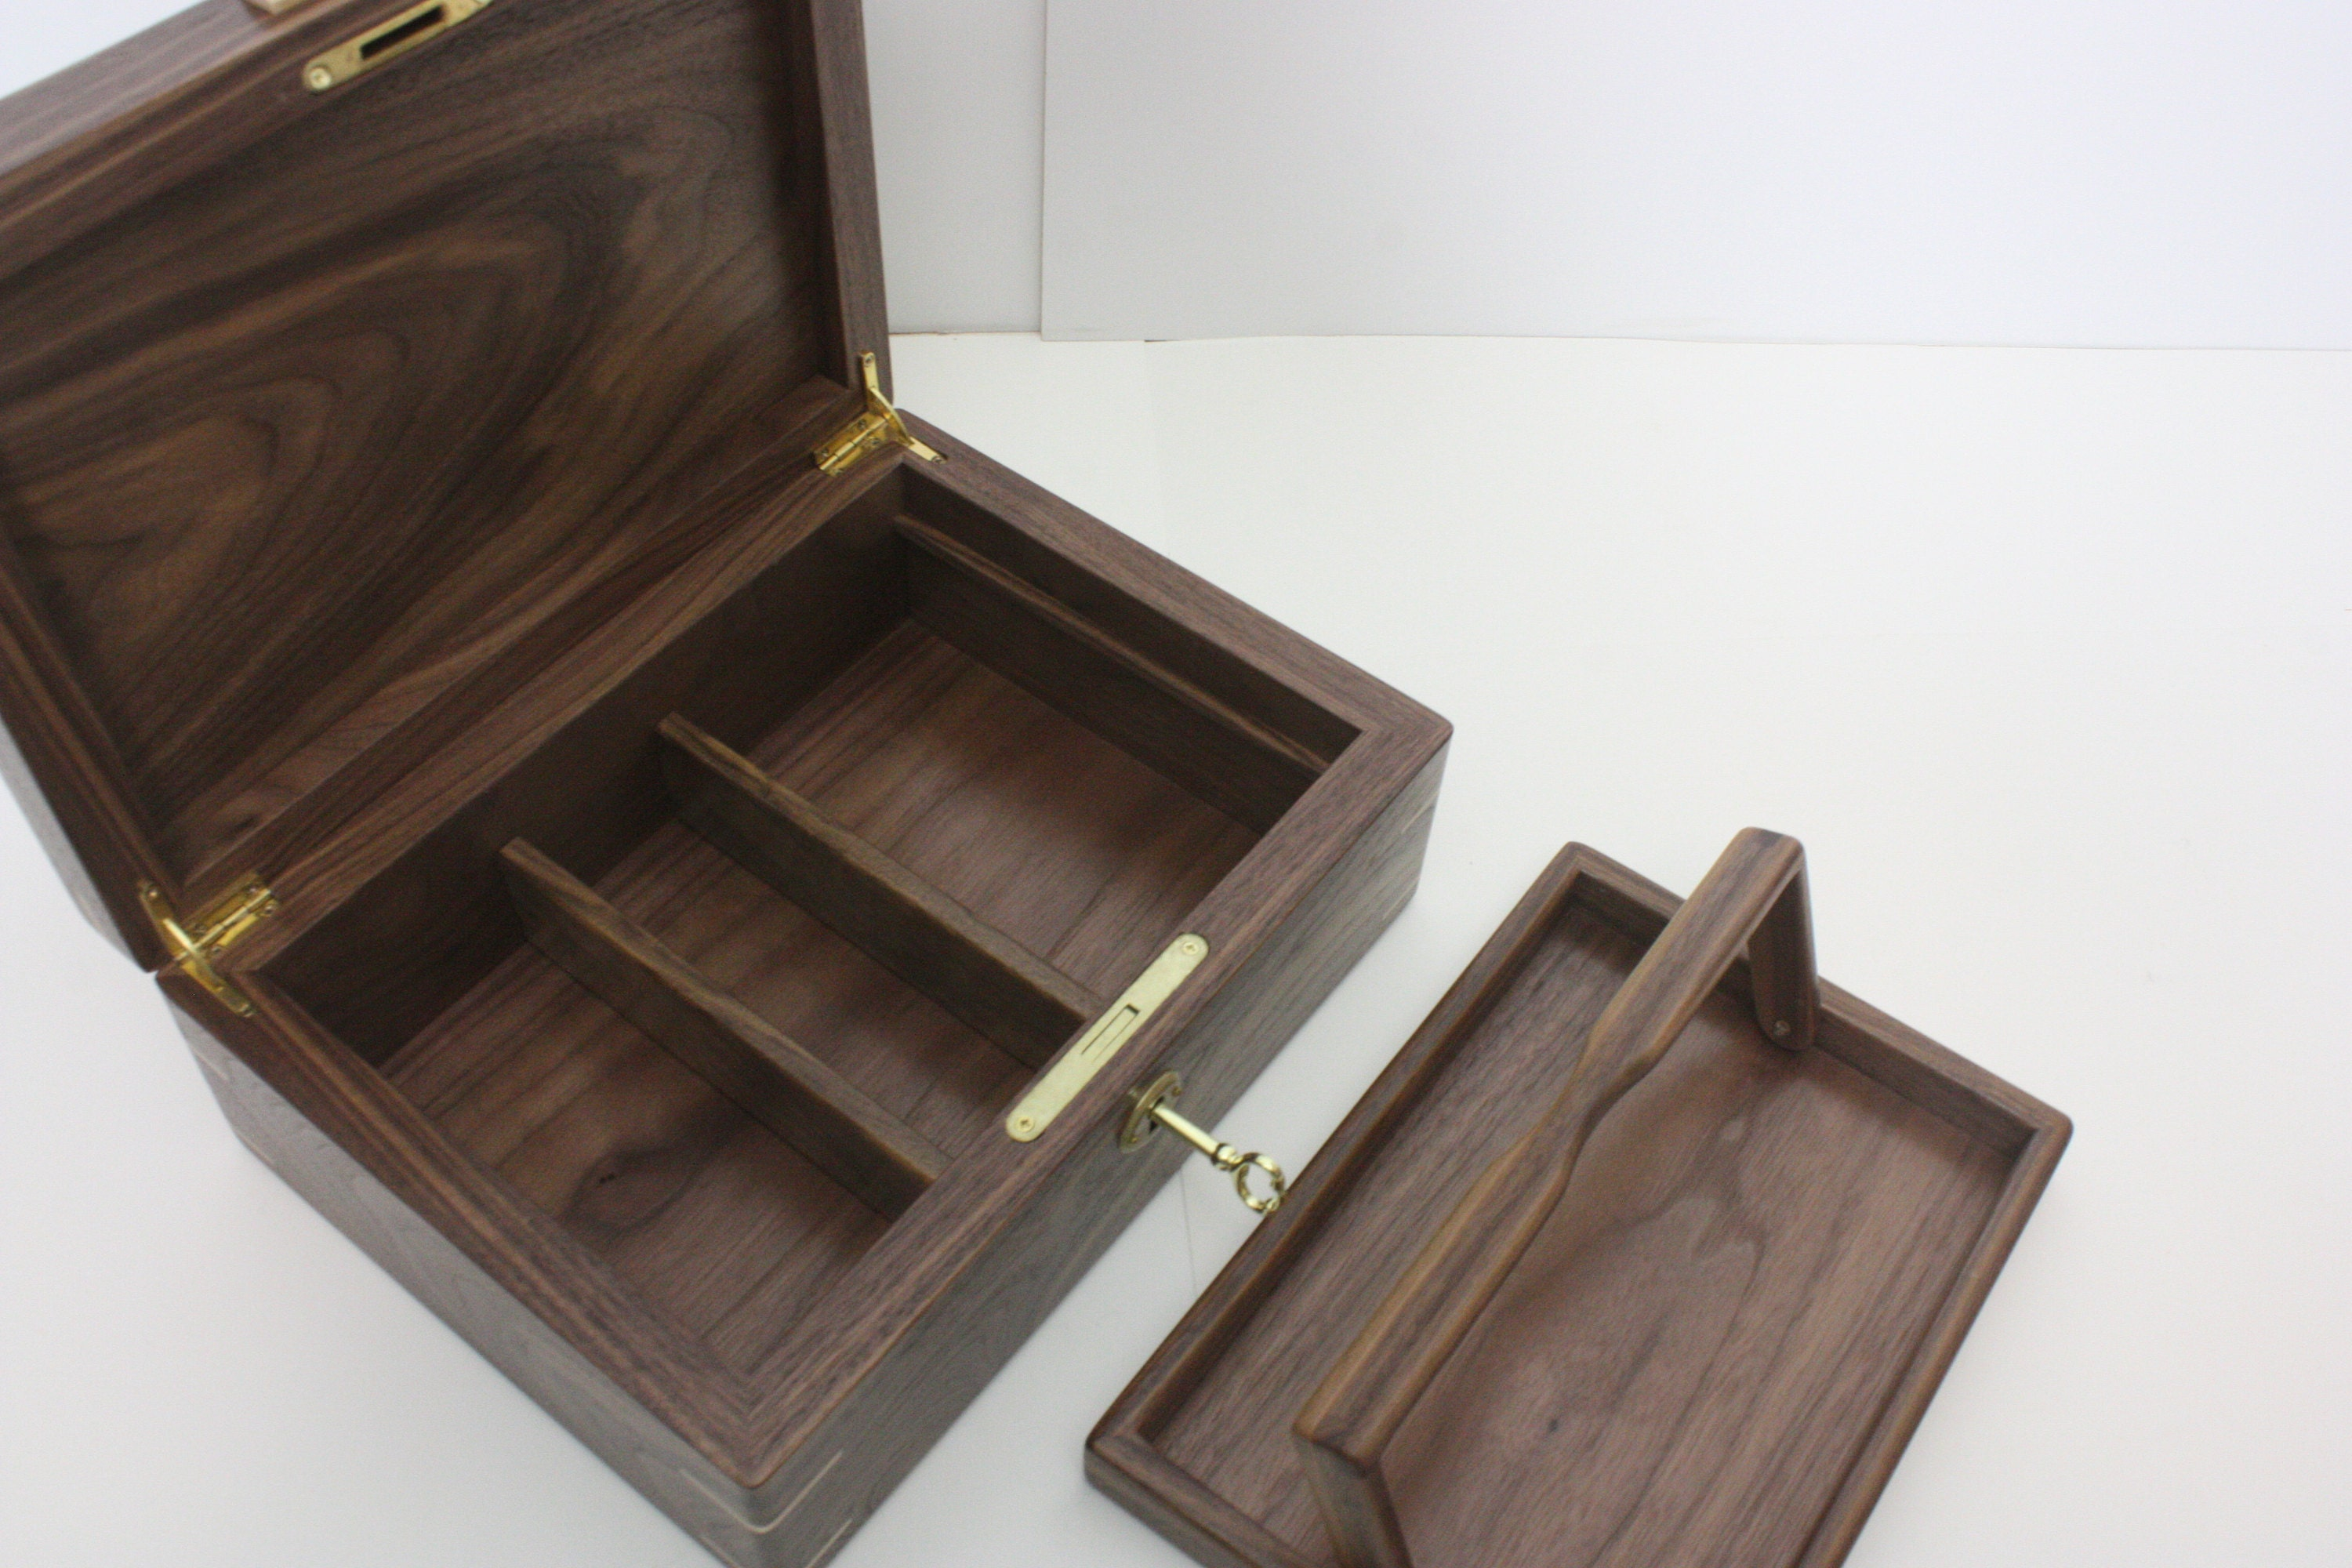 Wood Box with Adjustable Dividers